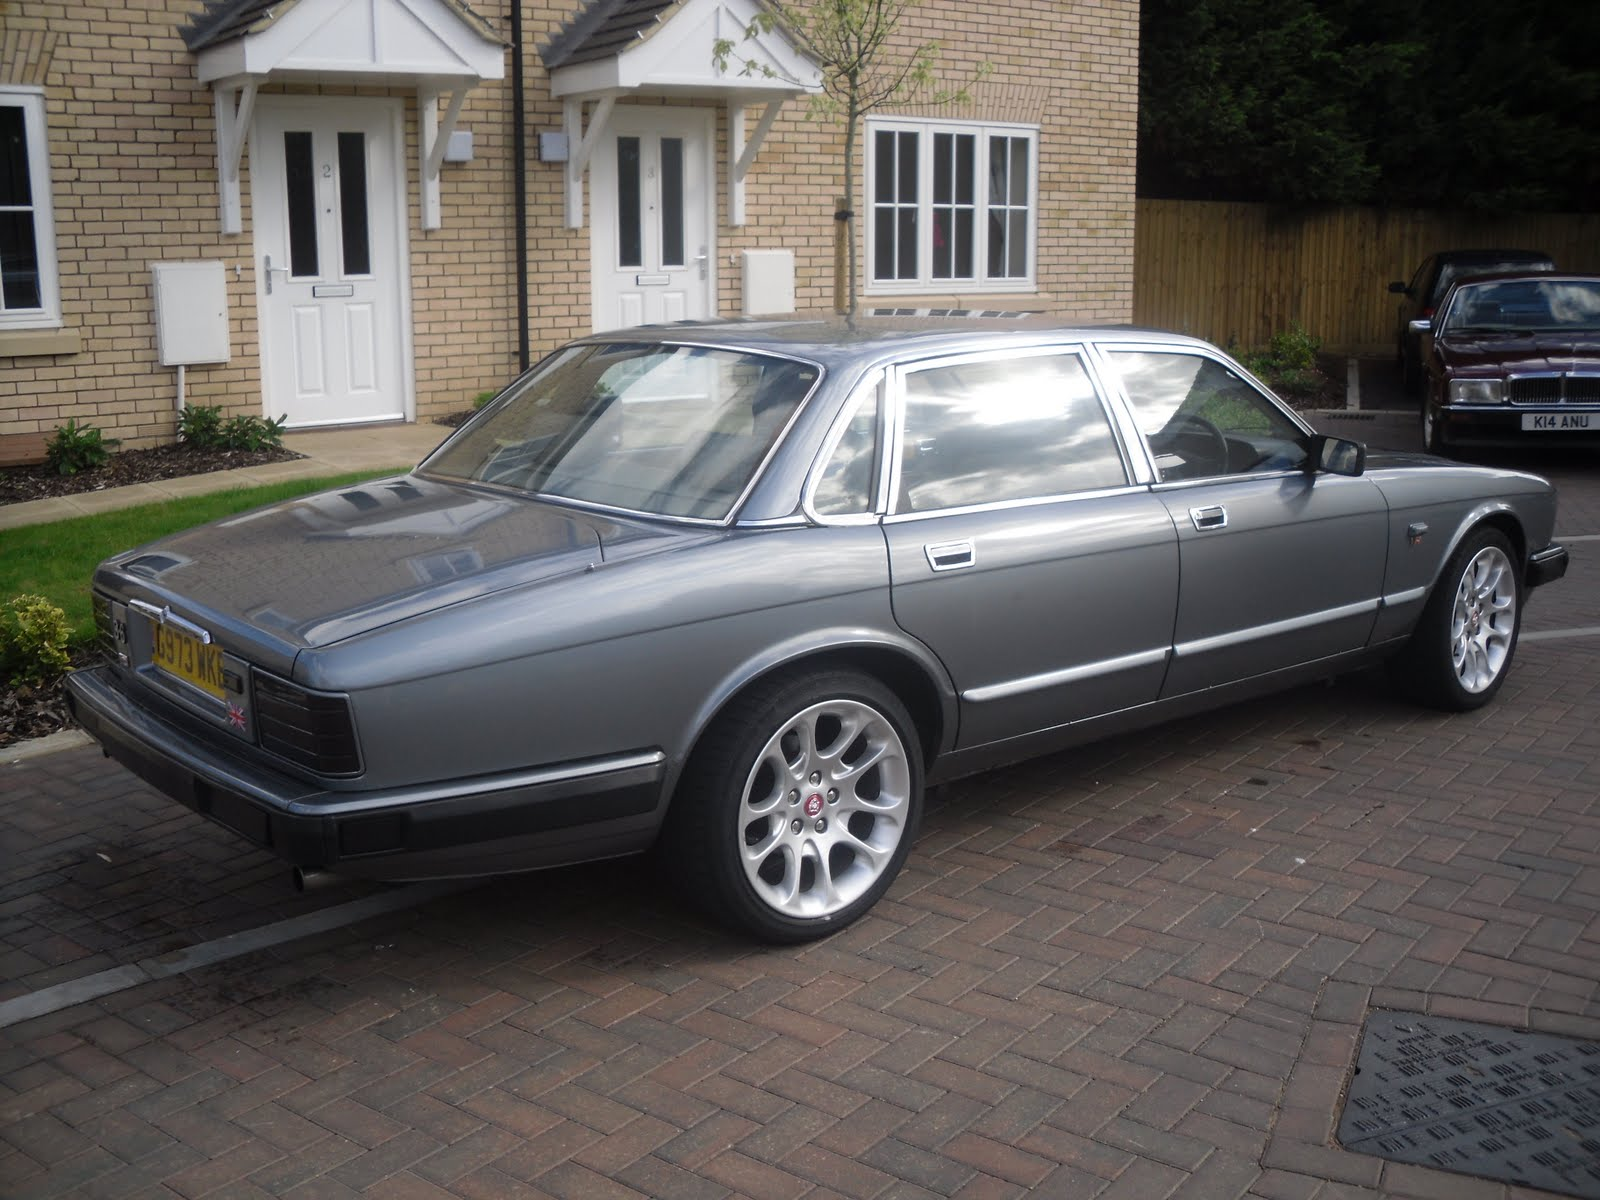 What's the biggist wheels I can fit without rubbing - XJ40